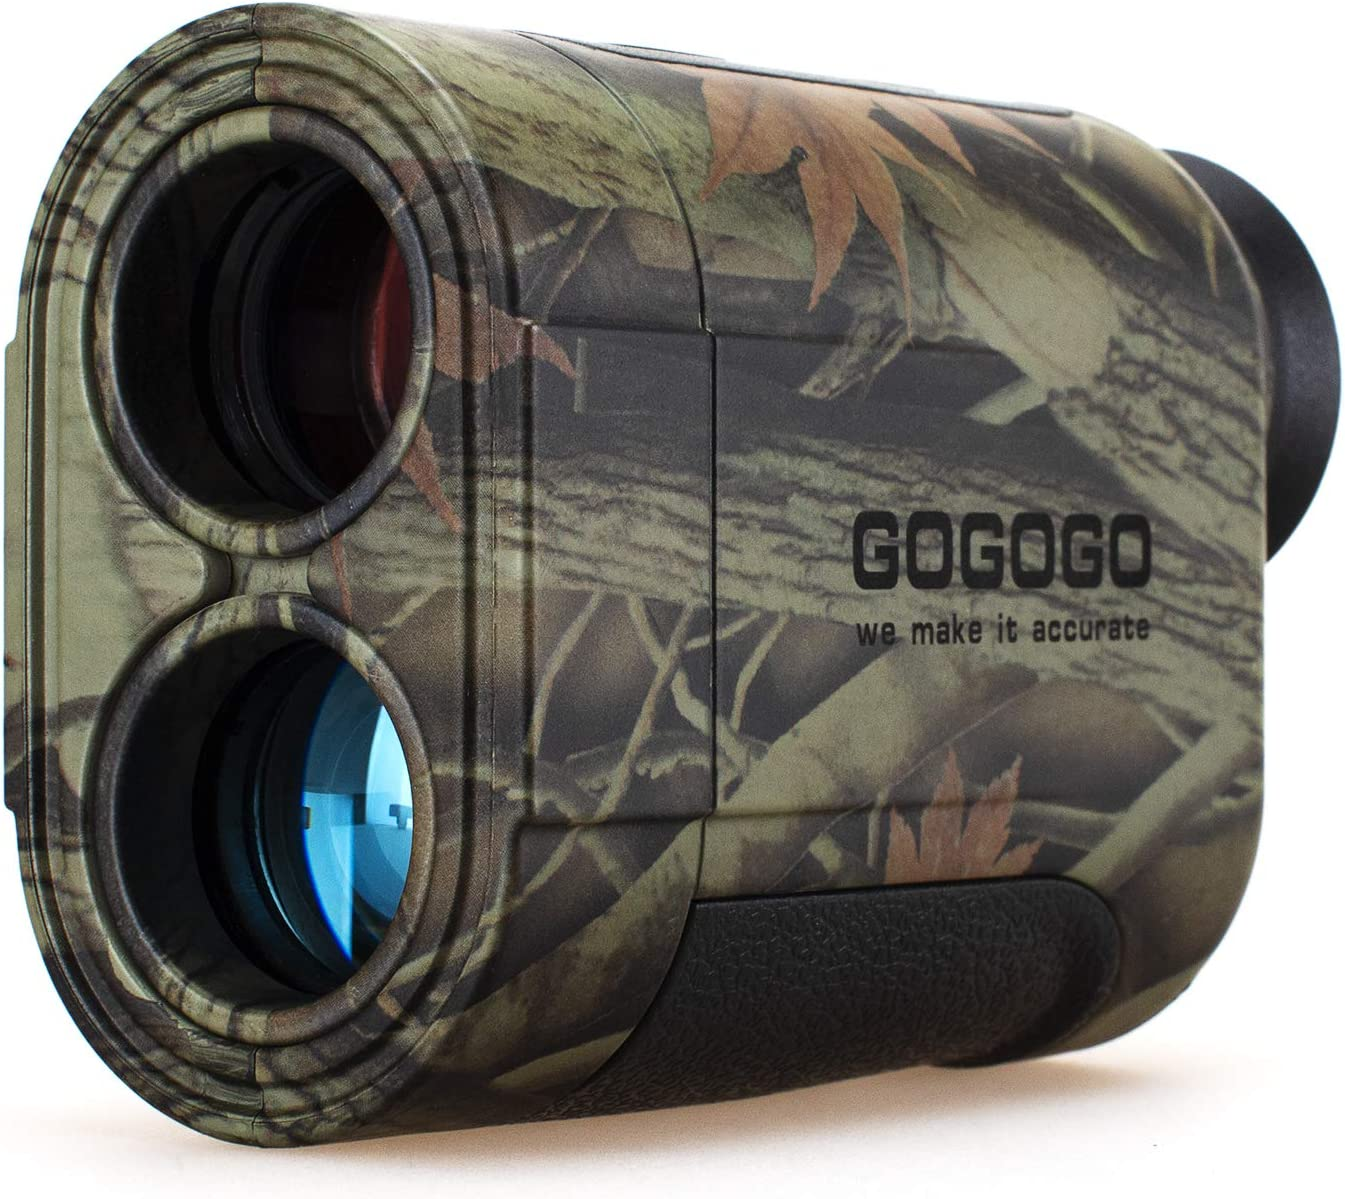 Gogogo 6X Hunting Laser Rangefinder Bow Range Finder Camo Distance Measuring Outdoor Wild 650/1200Y with Slope High-Precision Continuous Scan